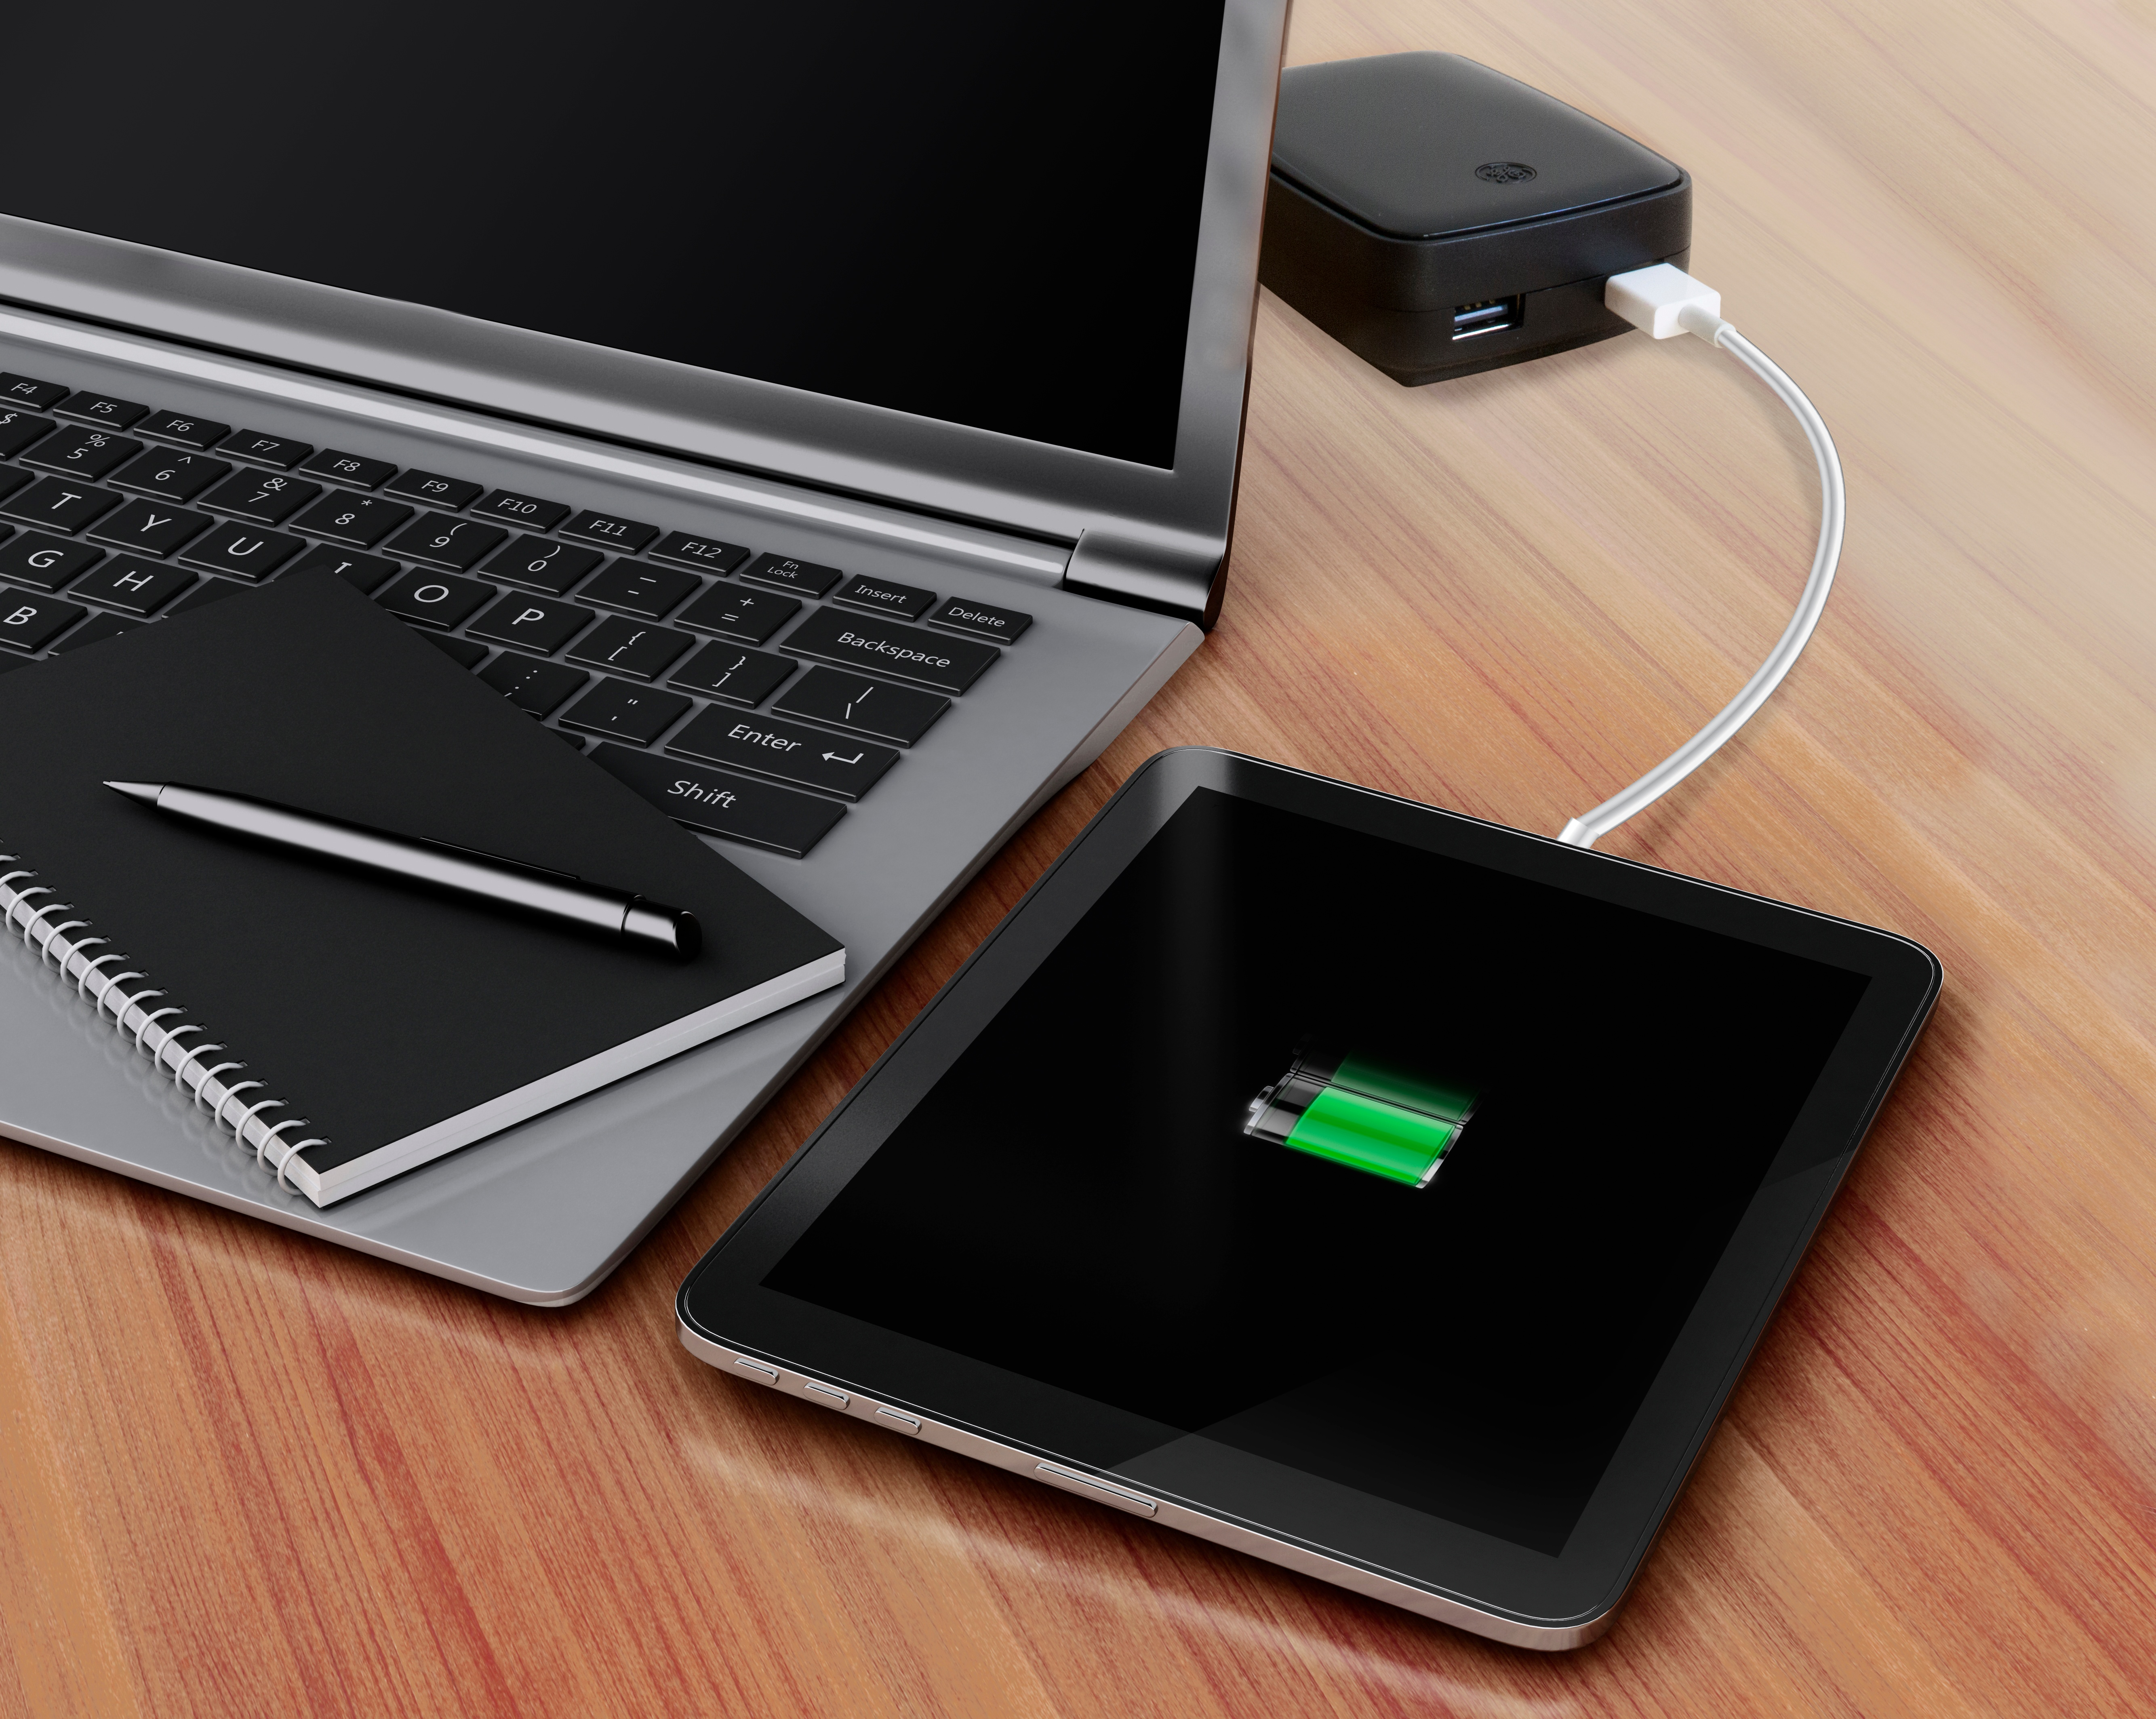 charge multiple devices at your desk with a USB tabletop charging station